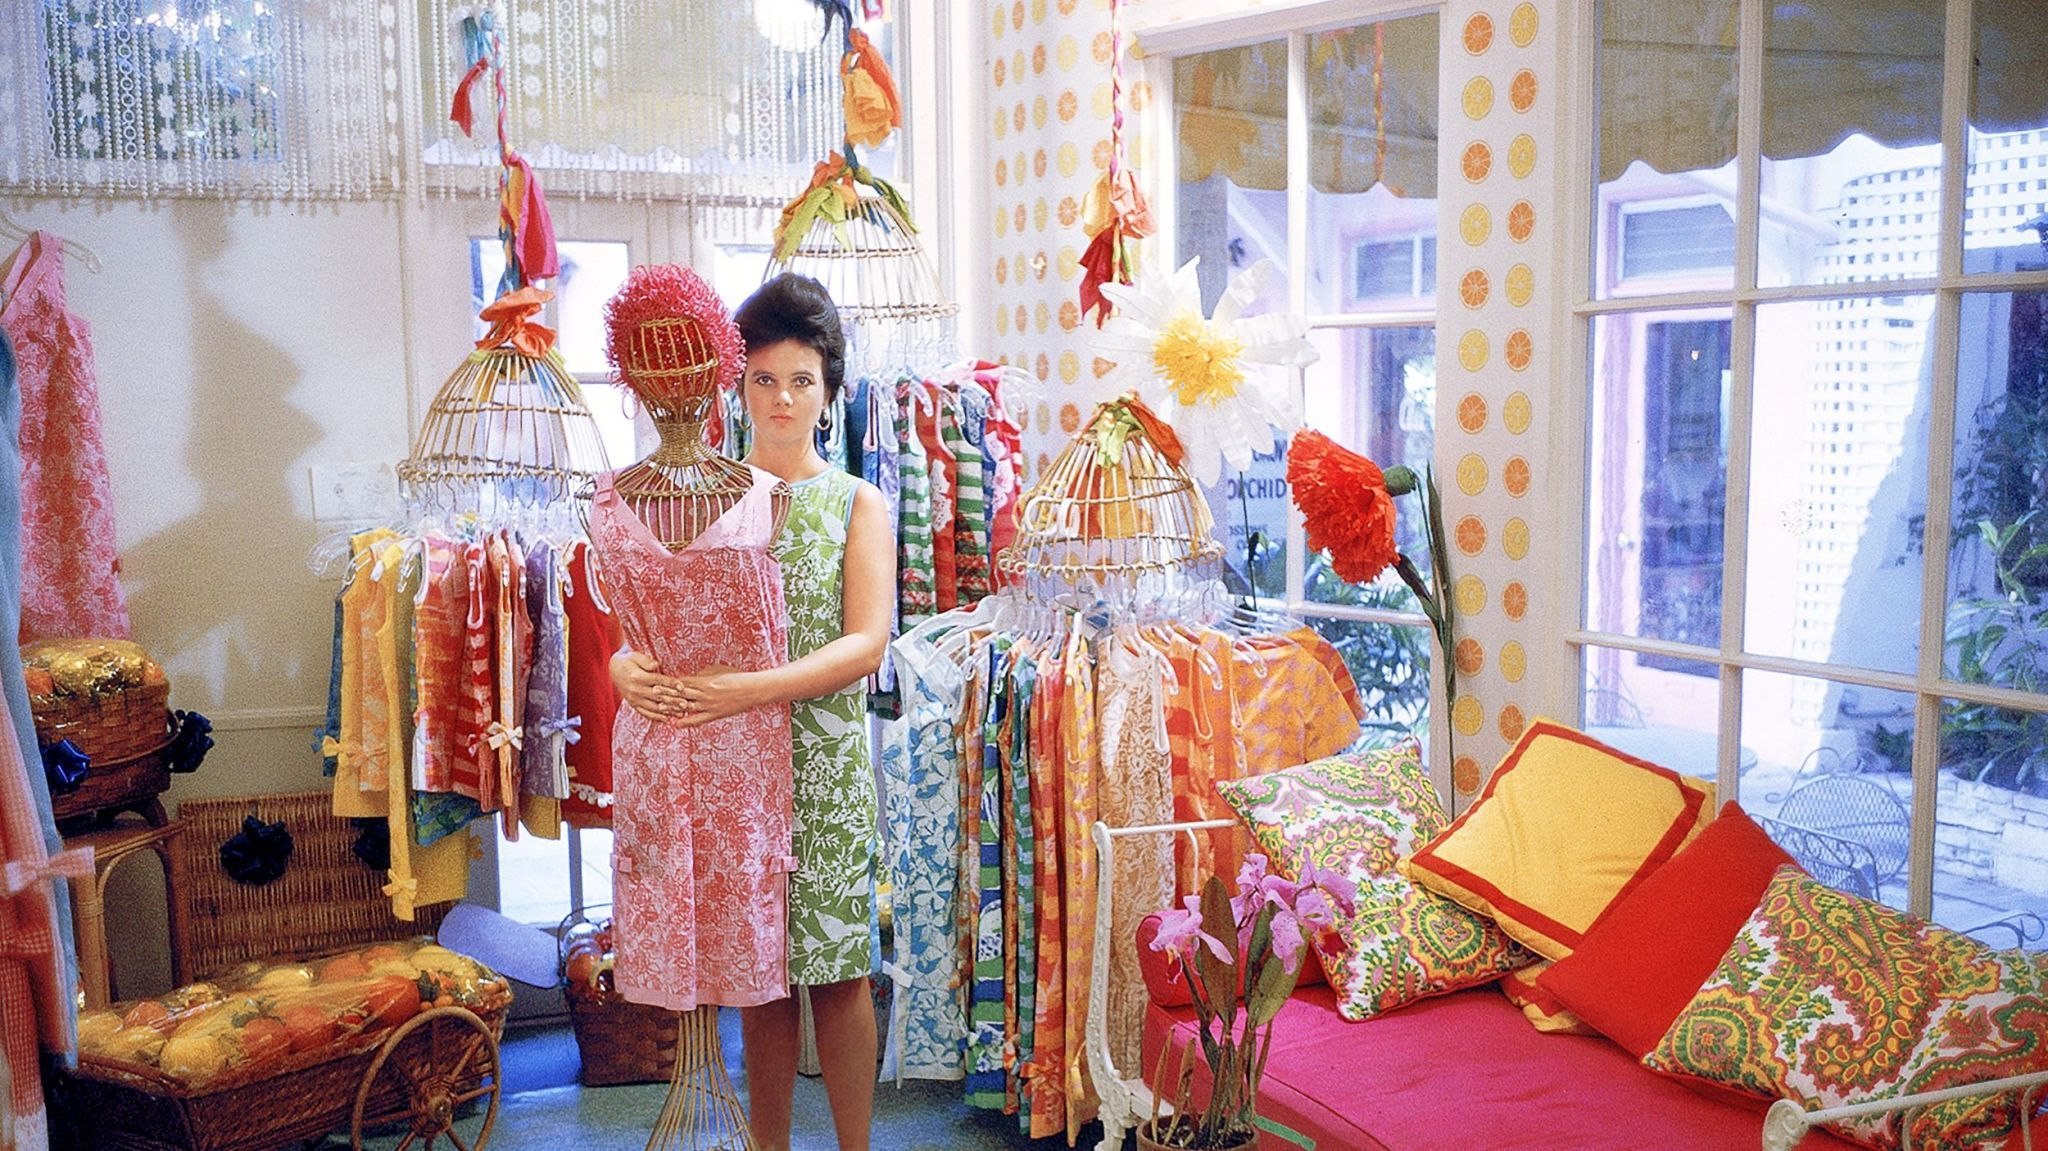 How Lilly Pulitzer Turned a Mental Breakdown into a Fashion Empire